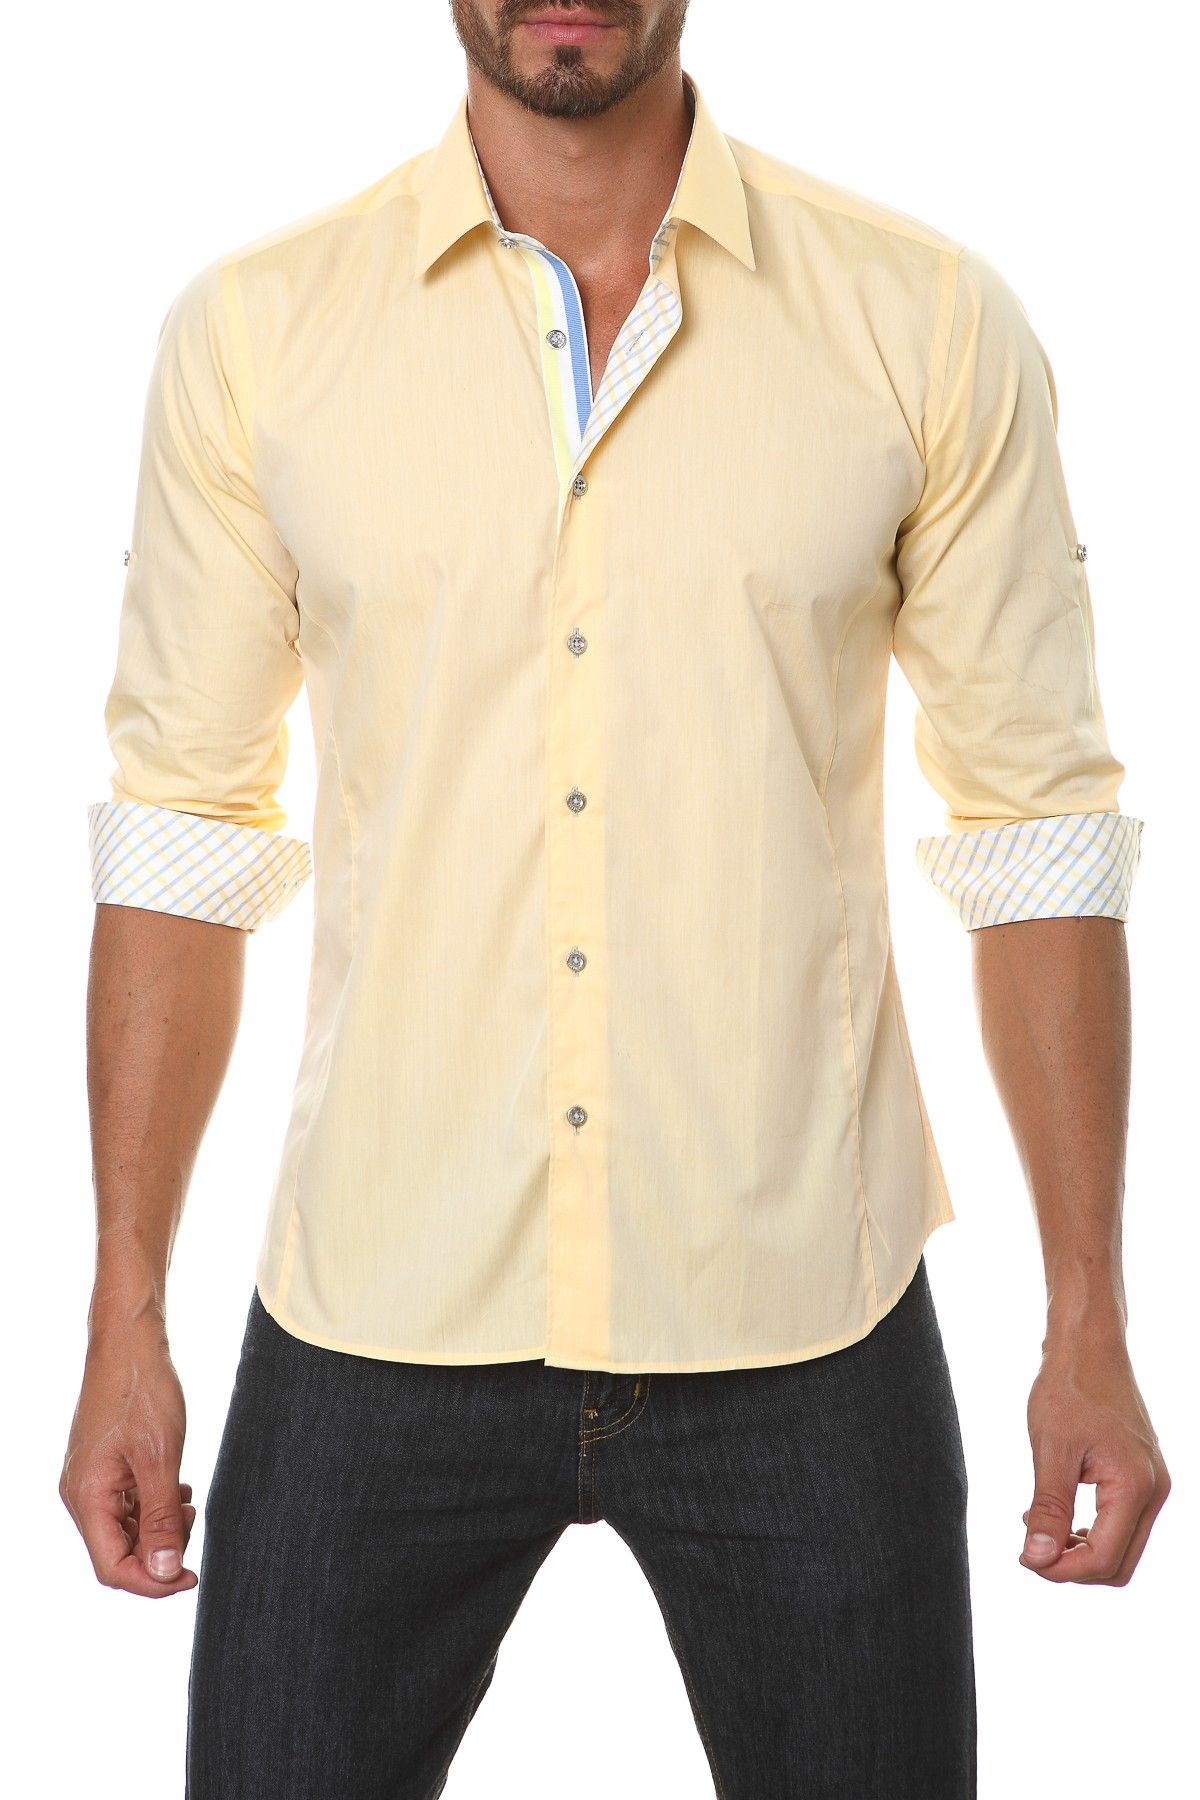 Yellow dress shirt men  Long Sleeve Contrast Trim SemiFitted Shirt  Products